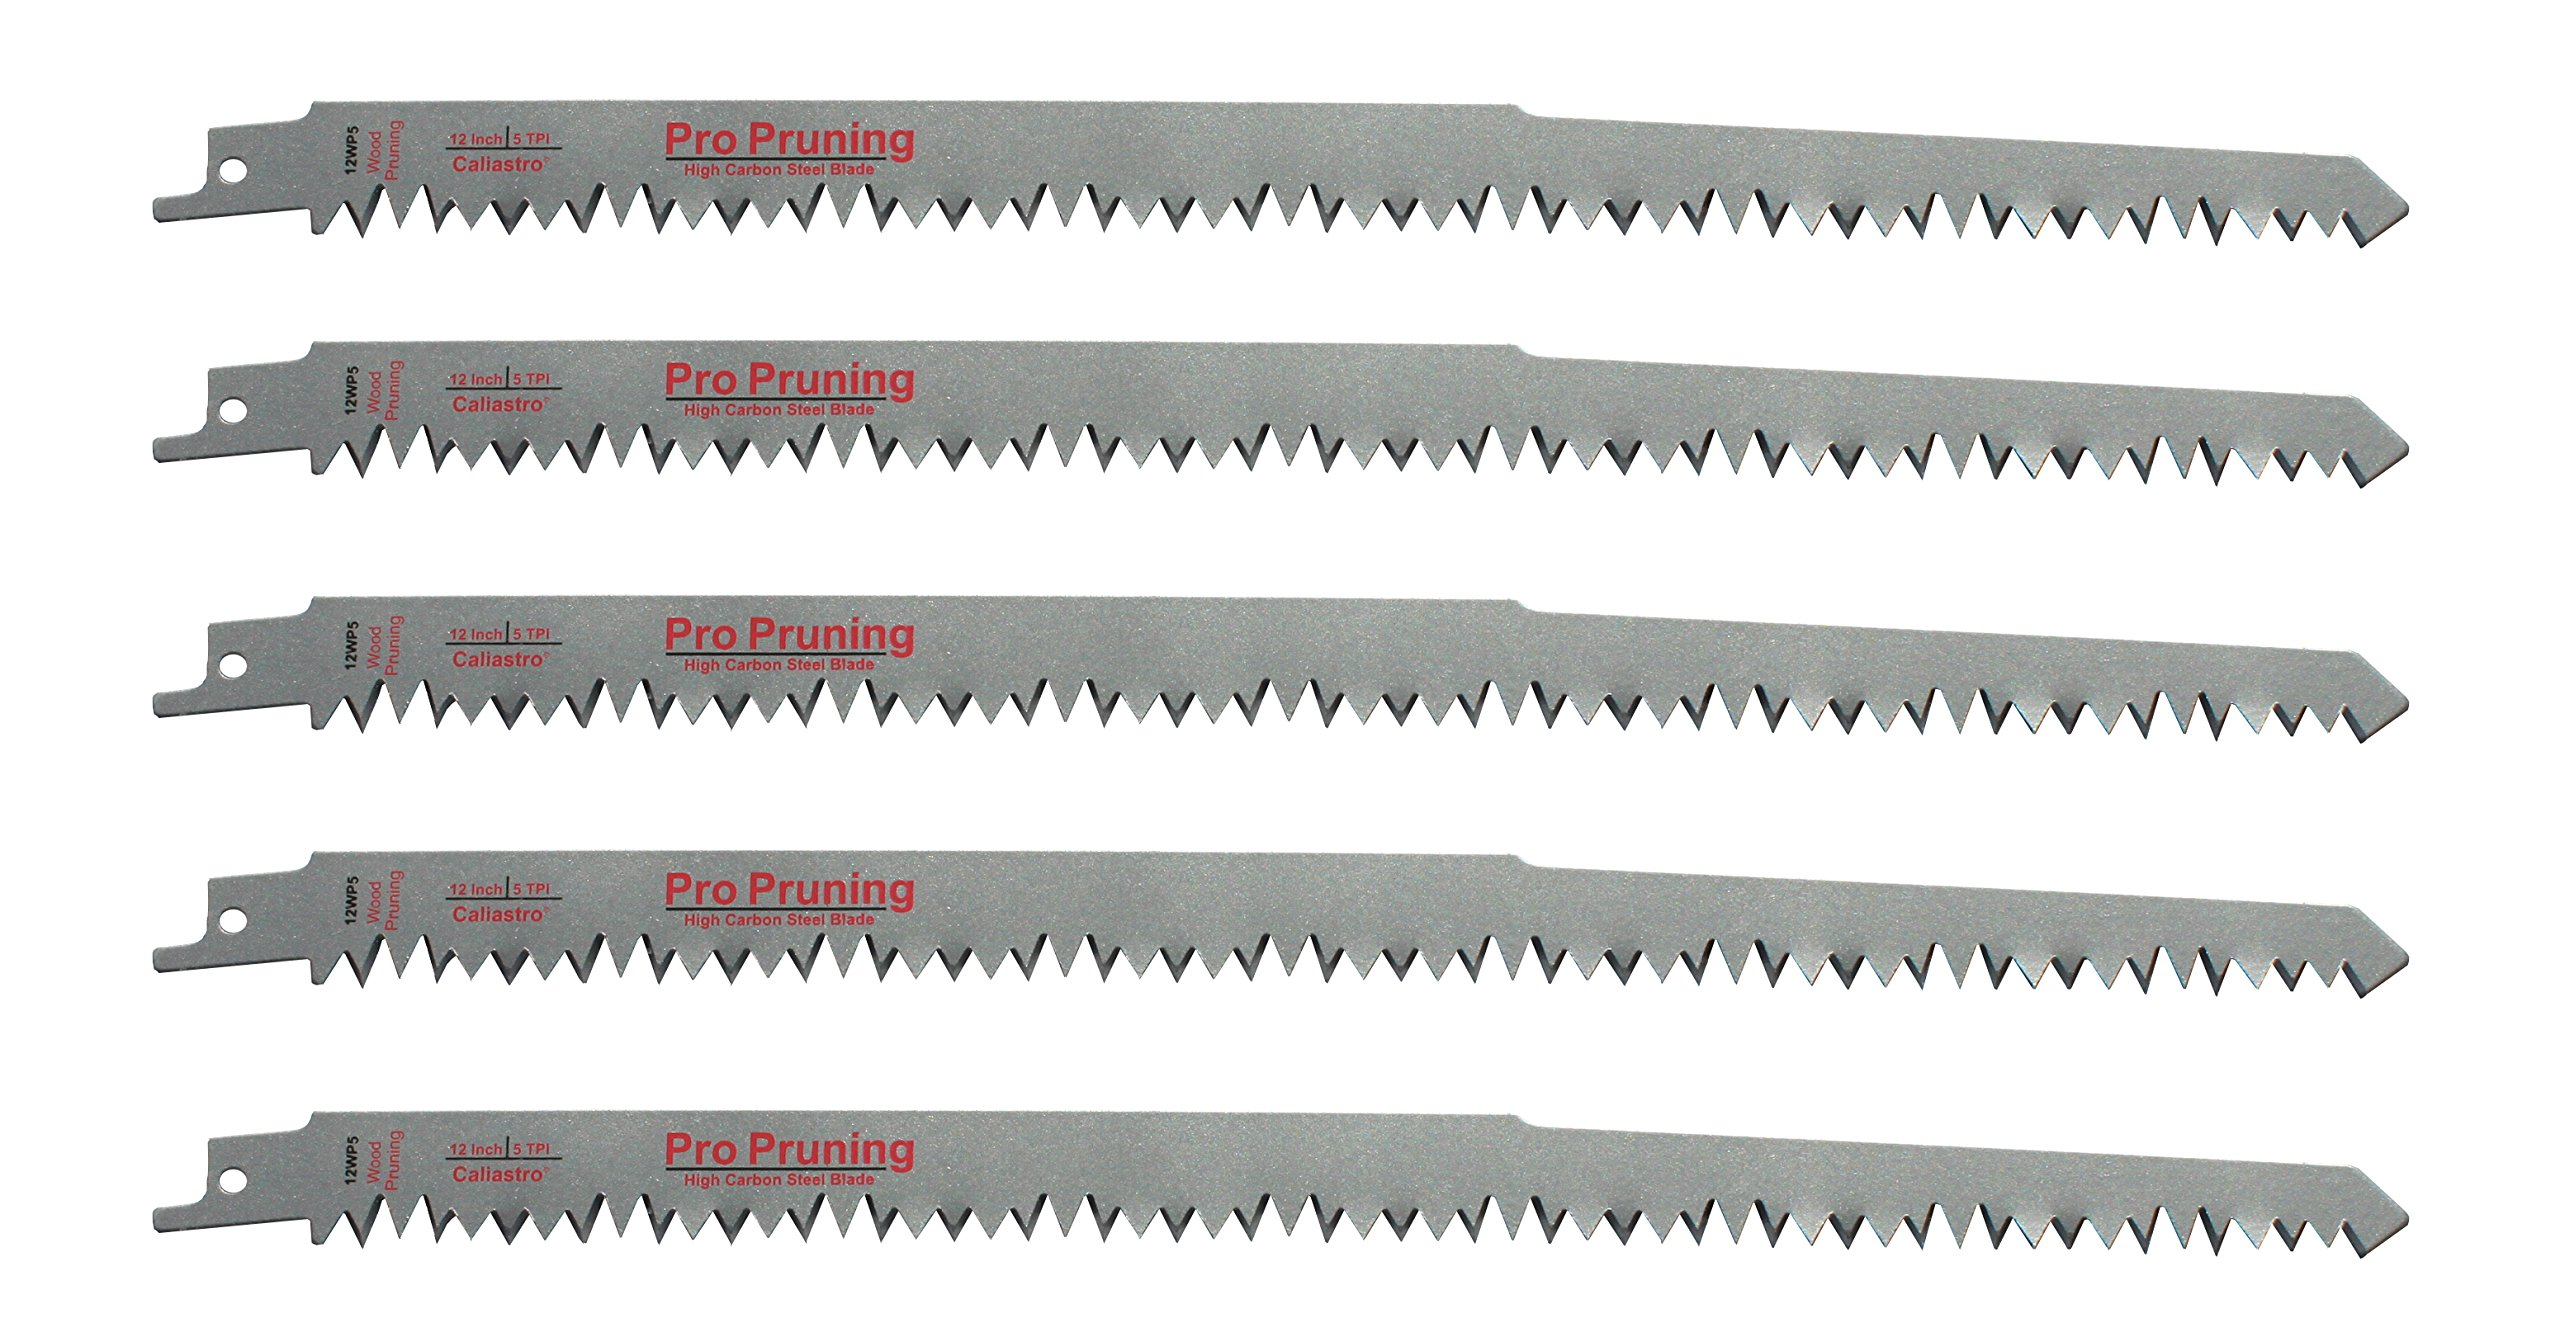 12-Inch Wood Pruning Reciprocating/Sawzall Saw Blades (5 TPI) - 5 Pack